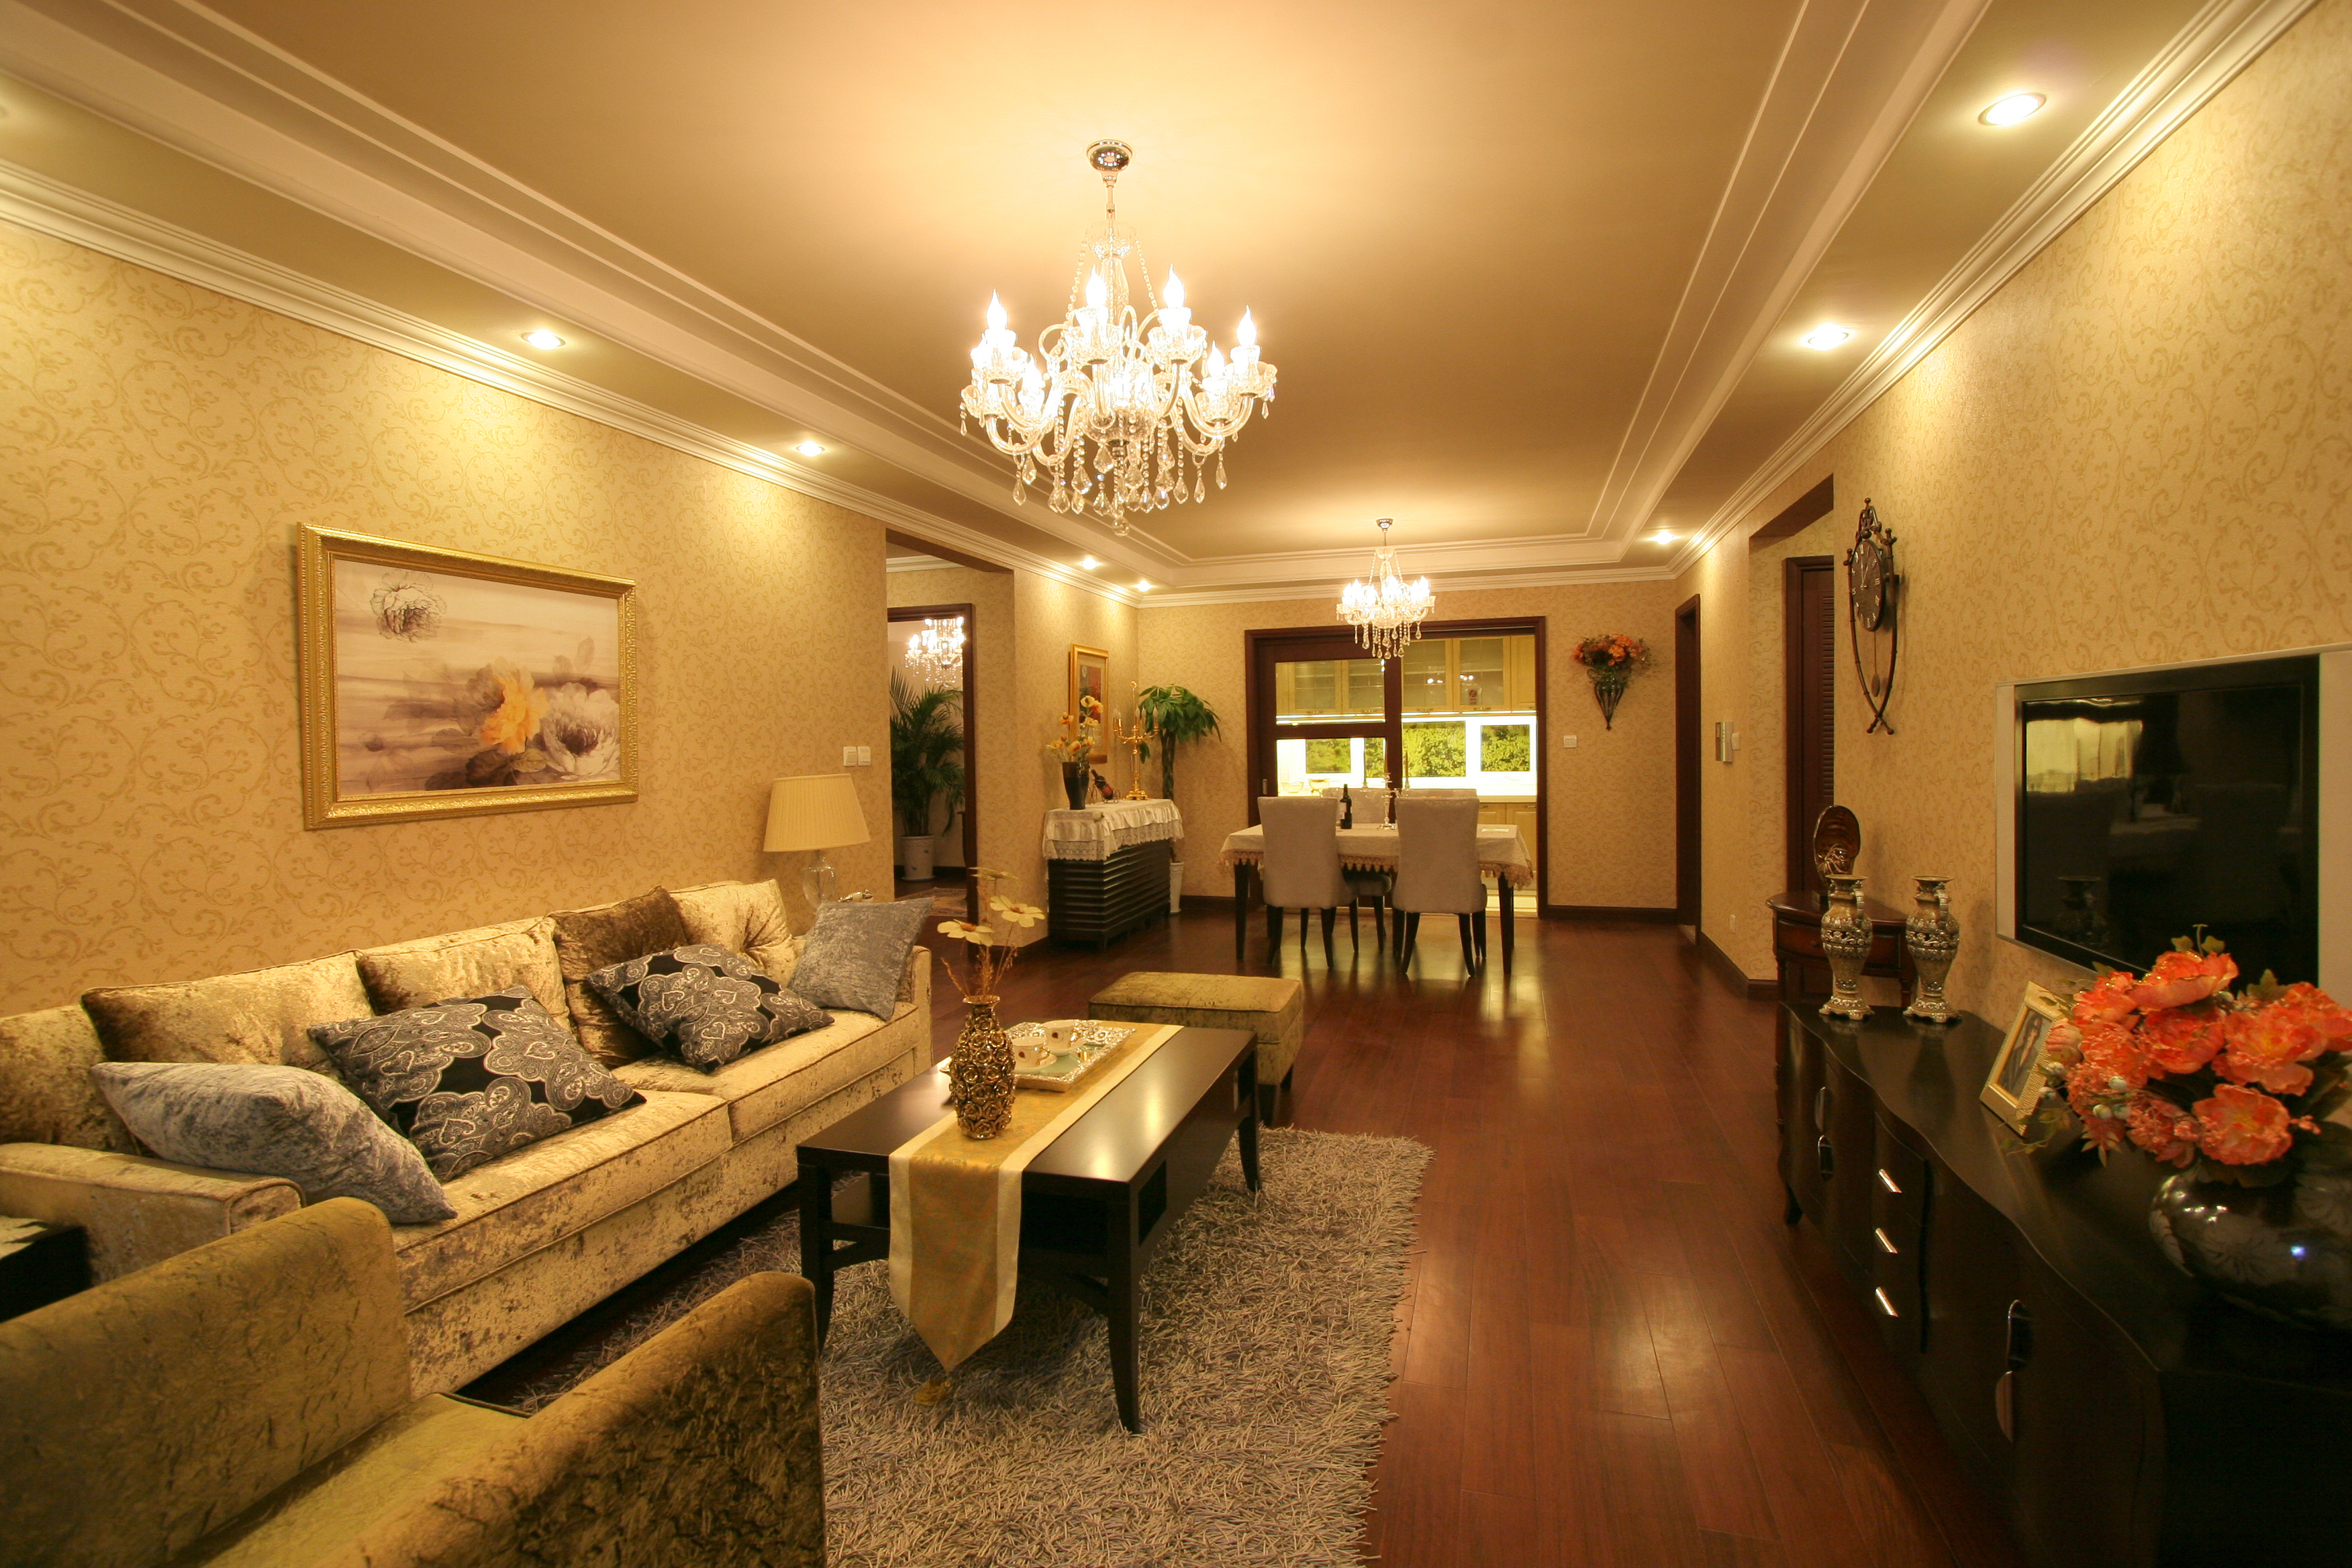 Home Interior Lighting How To Get The Lighting For Your Home Right Best Travel